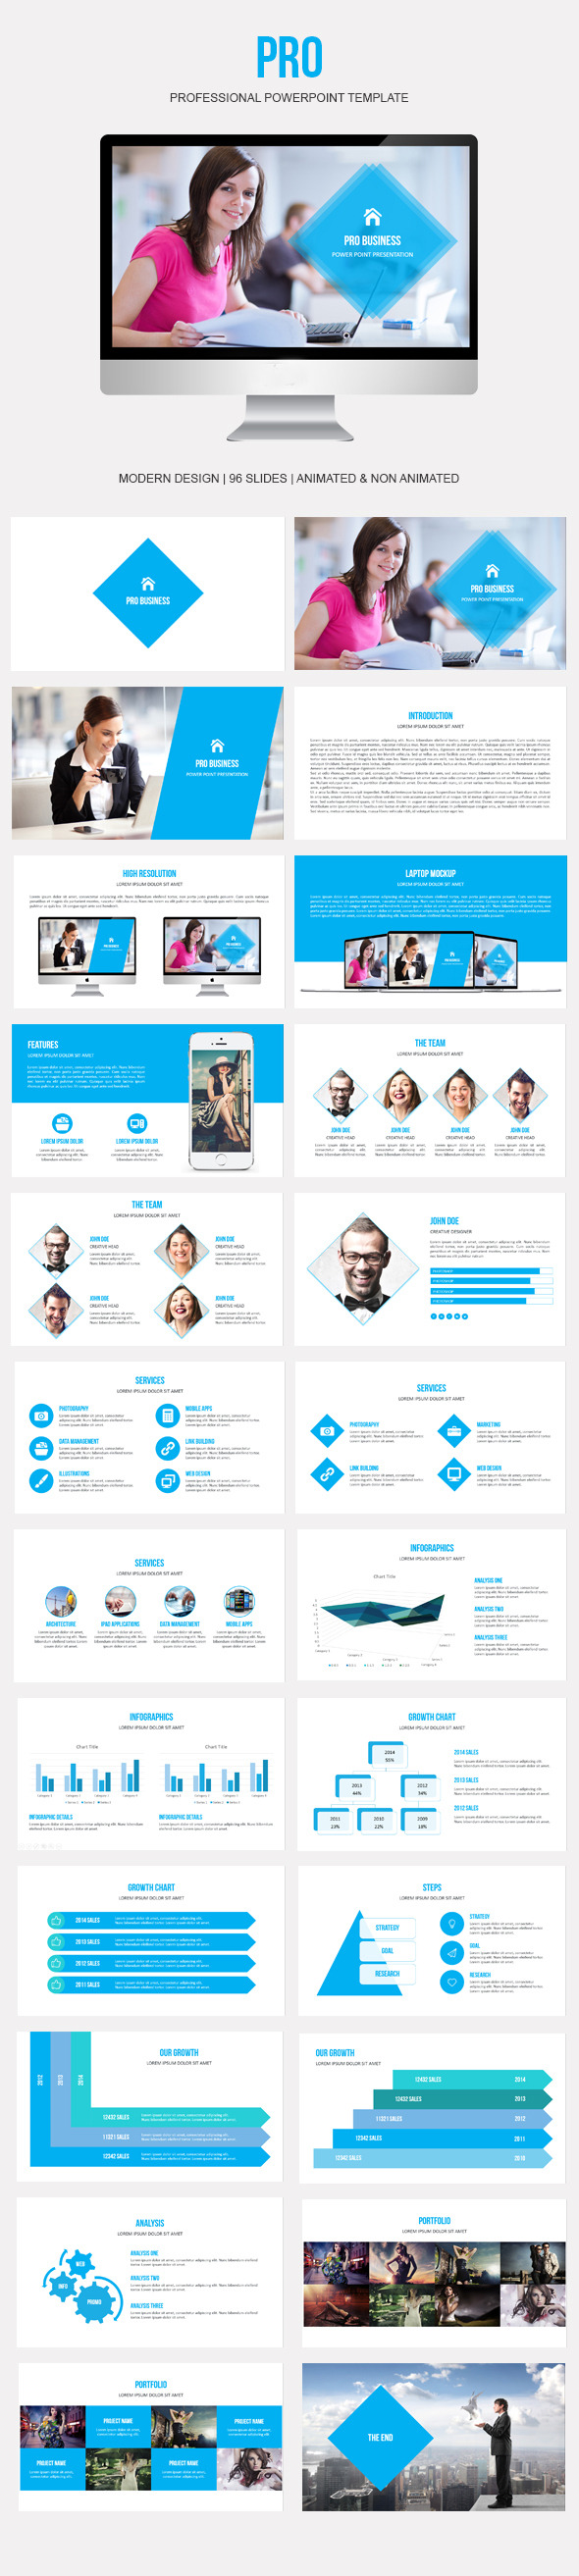 GraphicRiver Pro Powerpoint Presentation Template 9728183